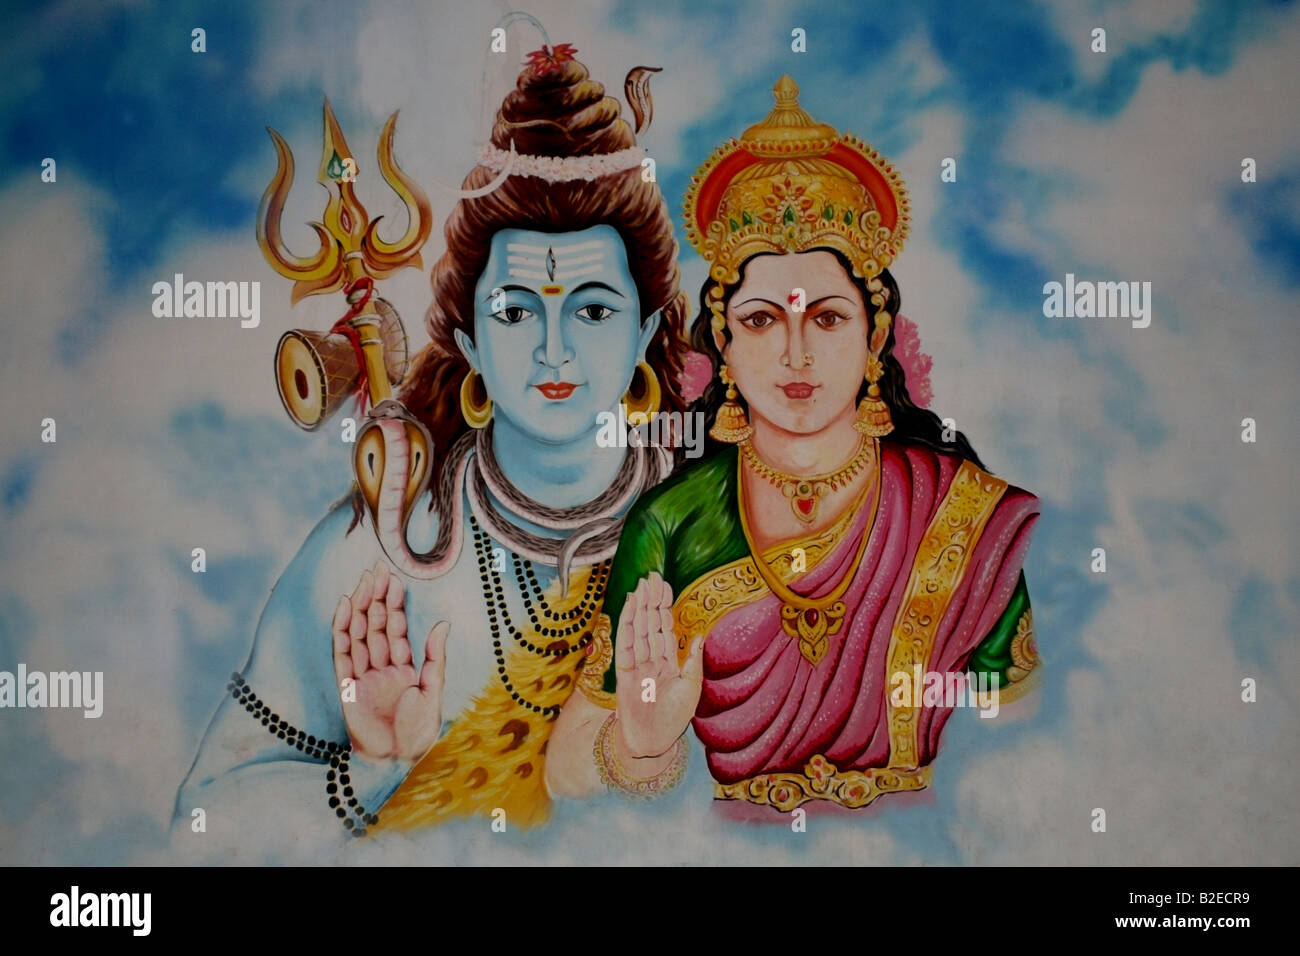 Mural of the Hindu God Shiva and his wife Parvarti , India - Stock Image